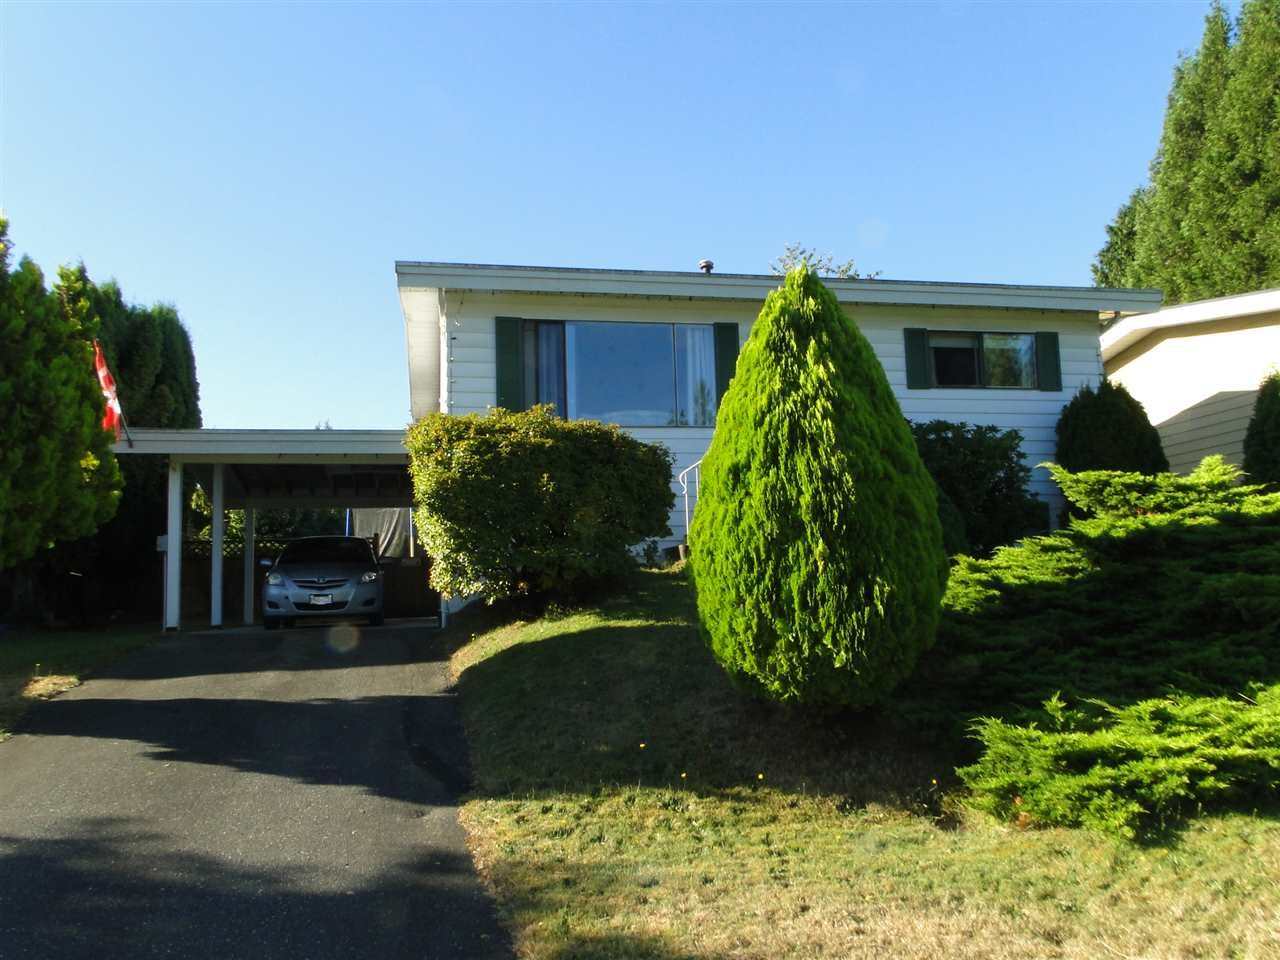 Main Photo: 33146 CAPRI Court in Abbotsford: Central Abbotsford House for sale : MLS®# R2494804